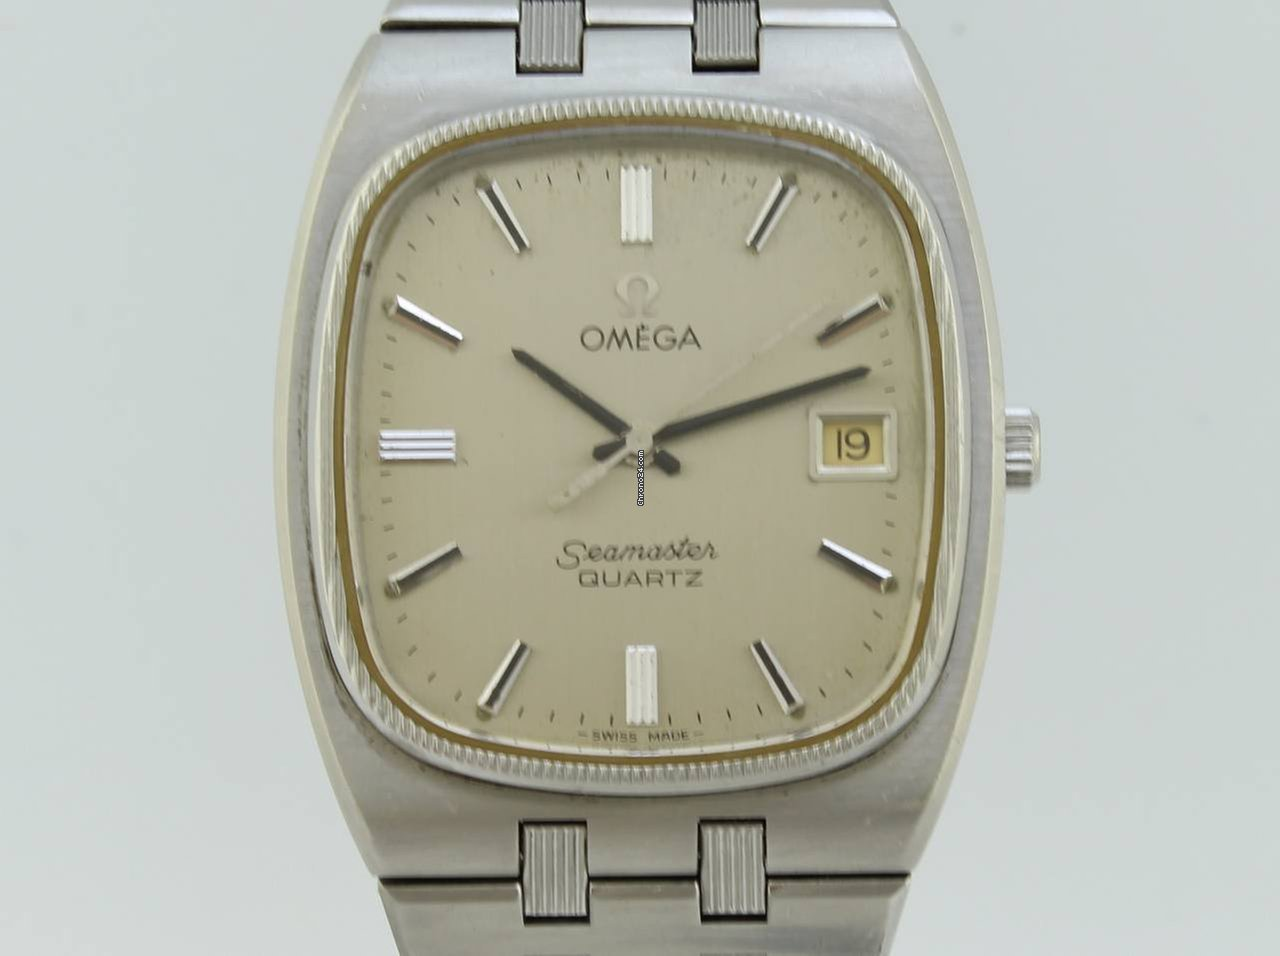 Omega Seamaster Quartz Steel 1342 For 2 811 For Sale From